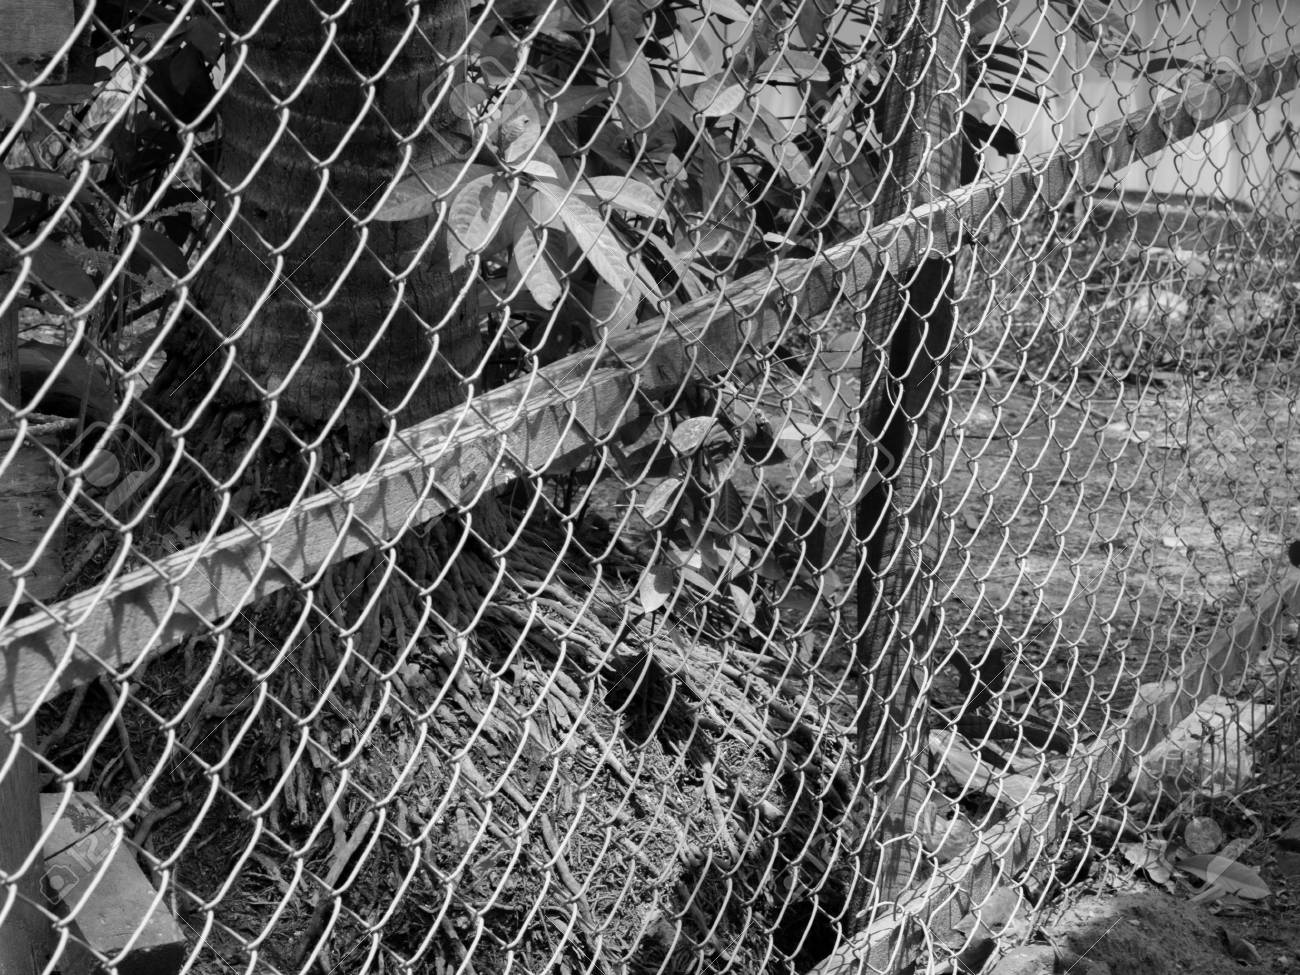 BLACK AND WHITE PHOTO OF CHAIN-LINK FENCE (ALSO REFERRED TO AS ...